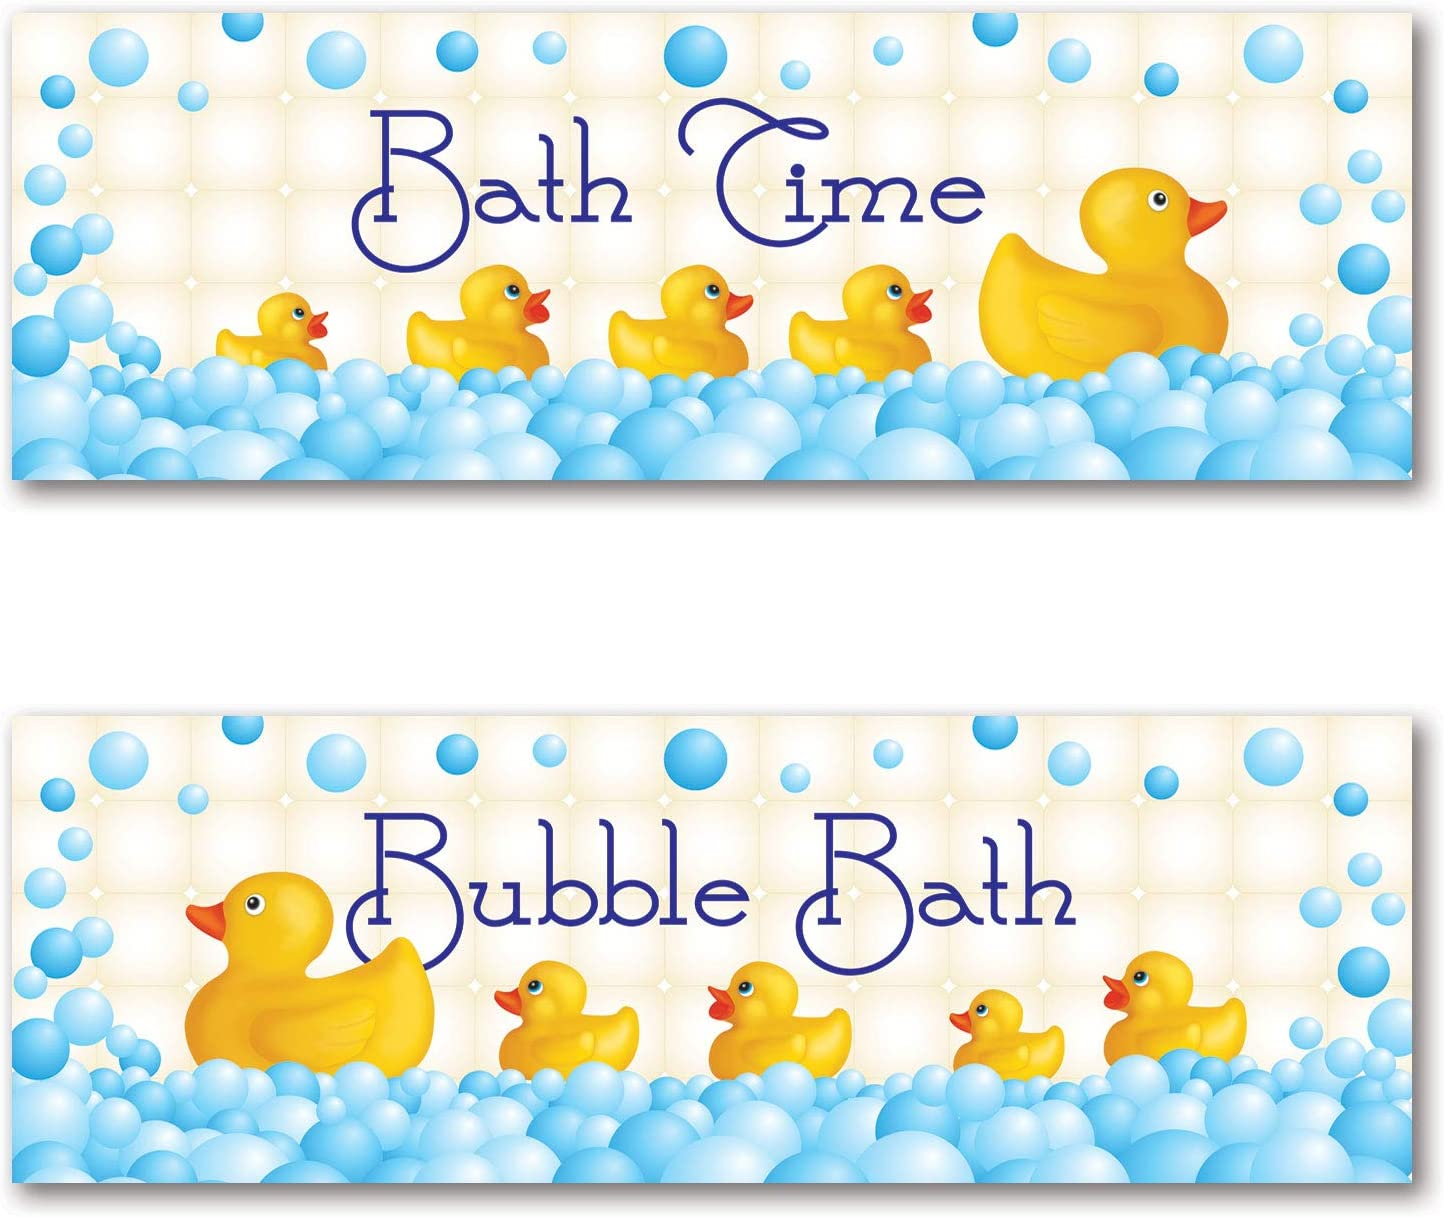 Adorable Bath Time and Bubble Bath Rubber Ducky Posters; Perfect for Any Kid's Bathroom; Two 18x6 Poster Prints